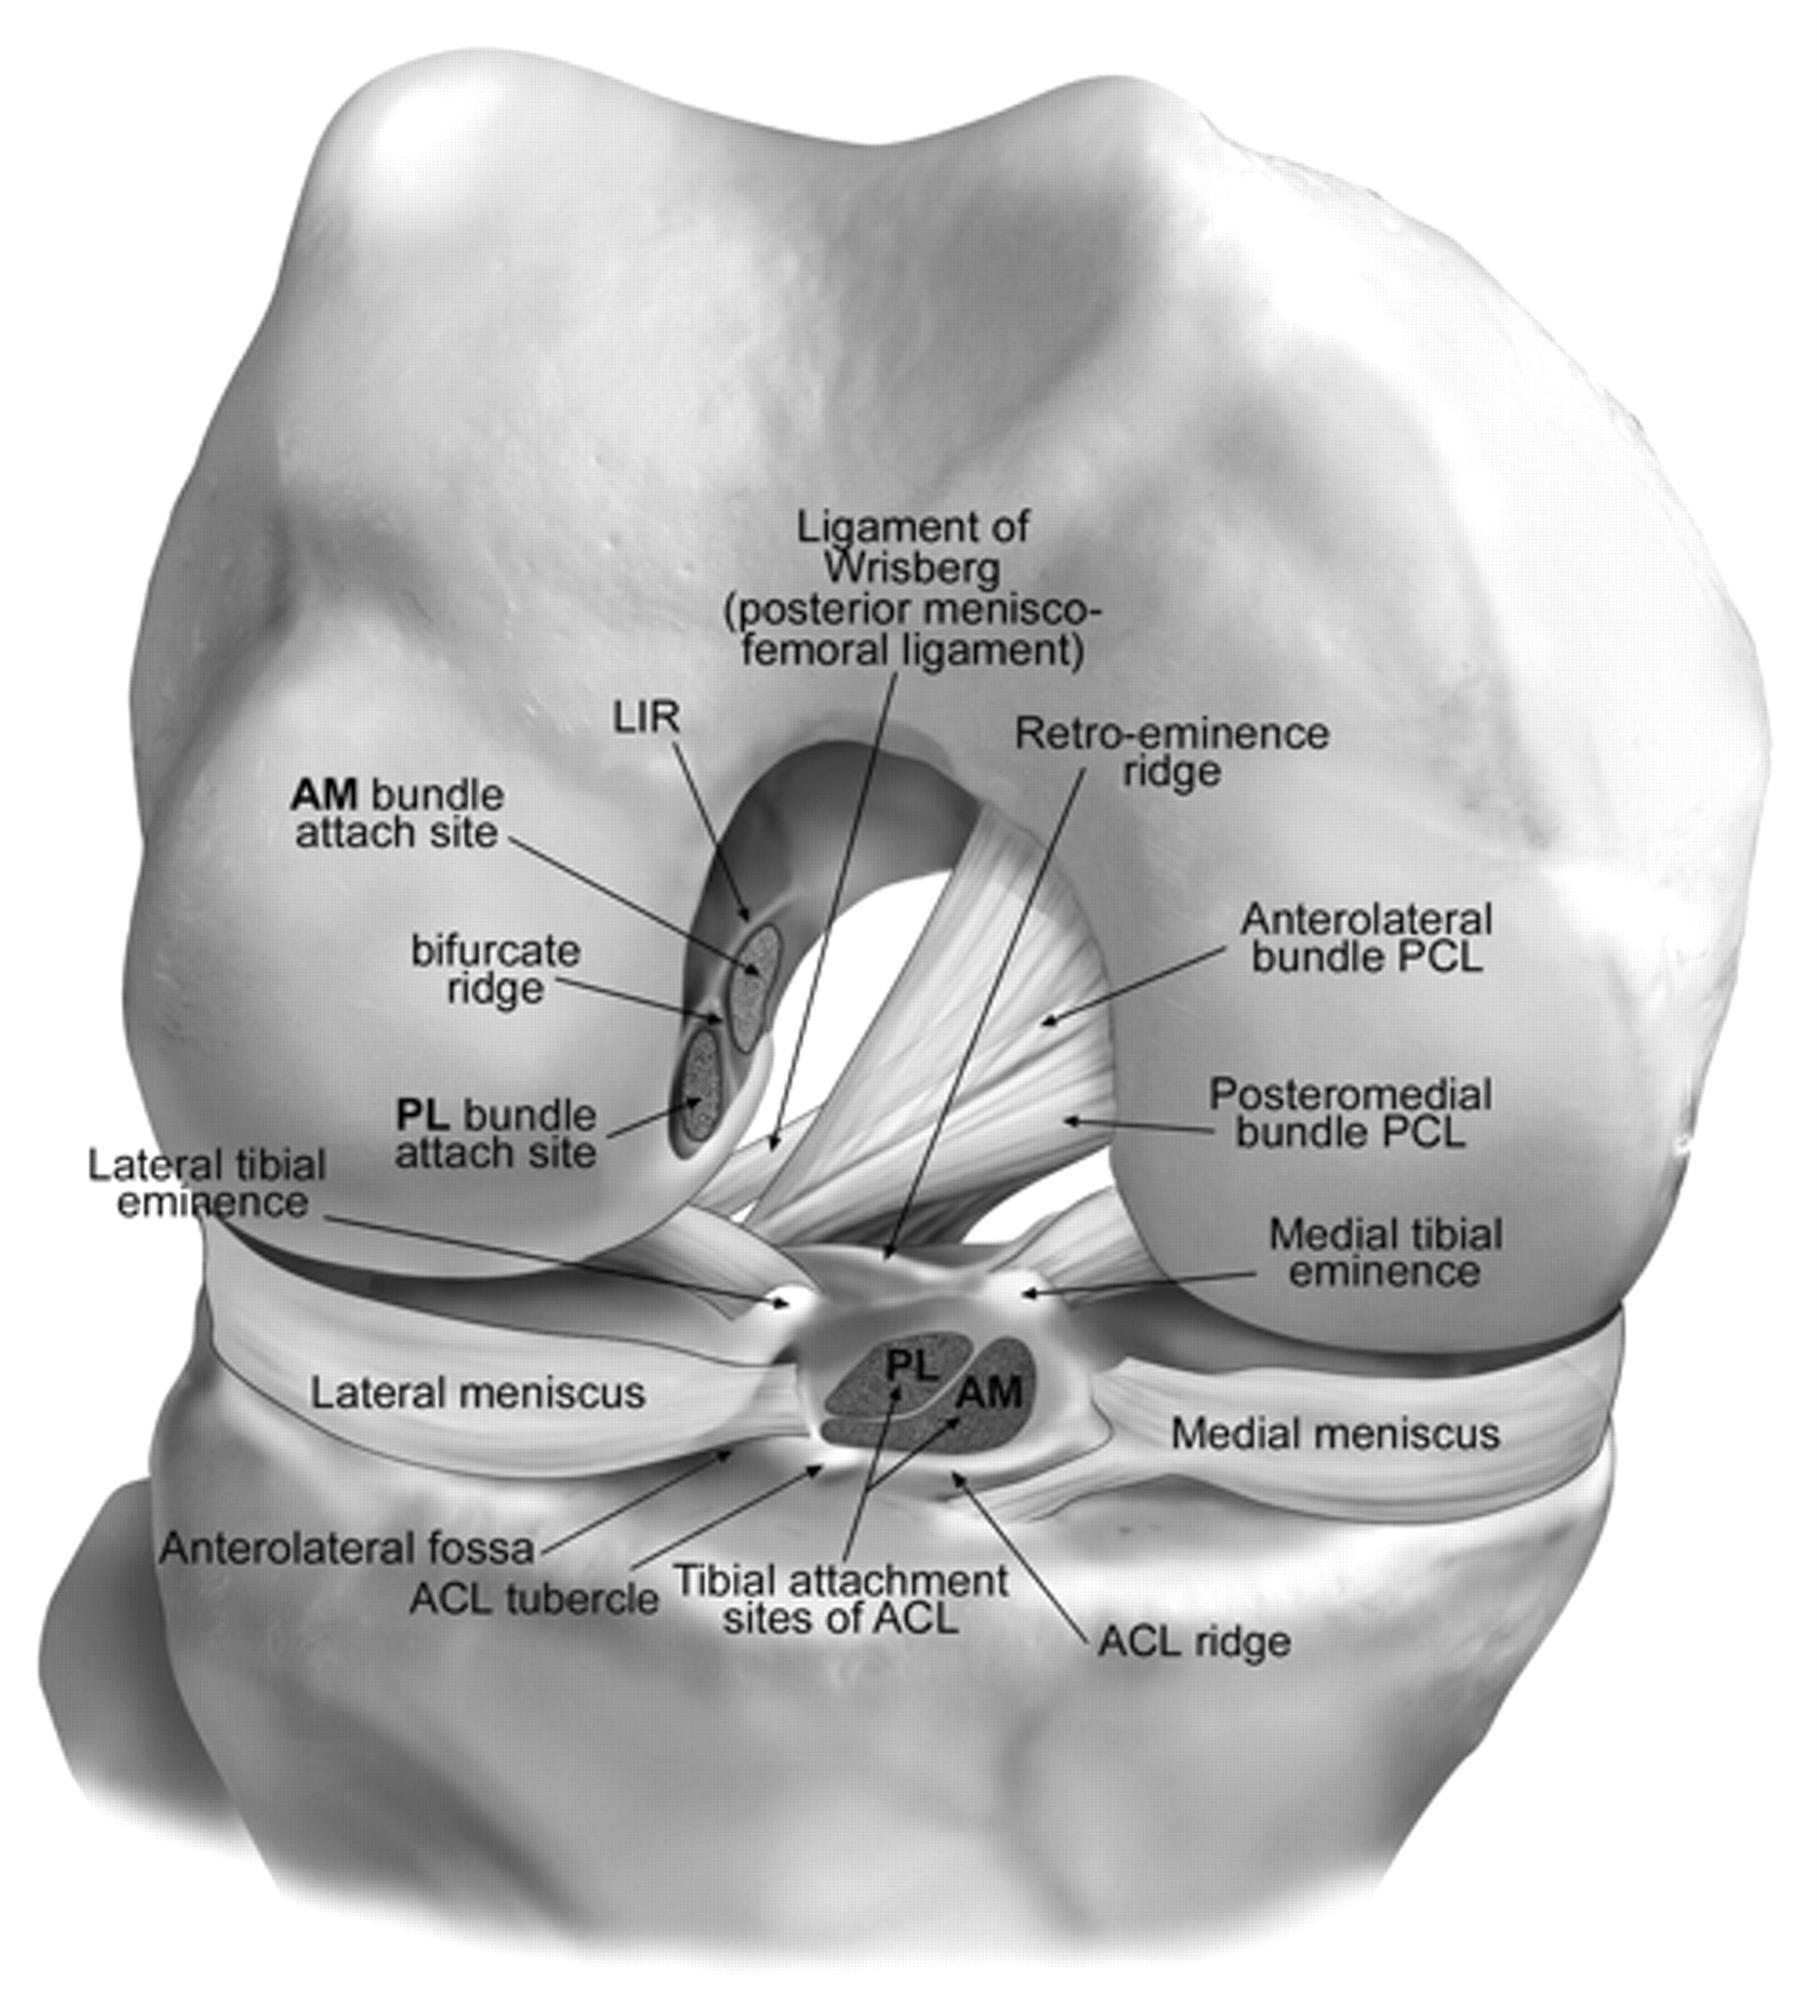 an introduction to anterior cruciate ligament injuries Introduction the anterior cruciate ligament (acl) is considered the primary  passive restraint to anterior translation of the tibia on the.